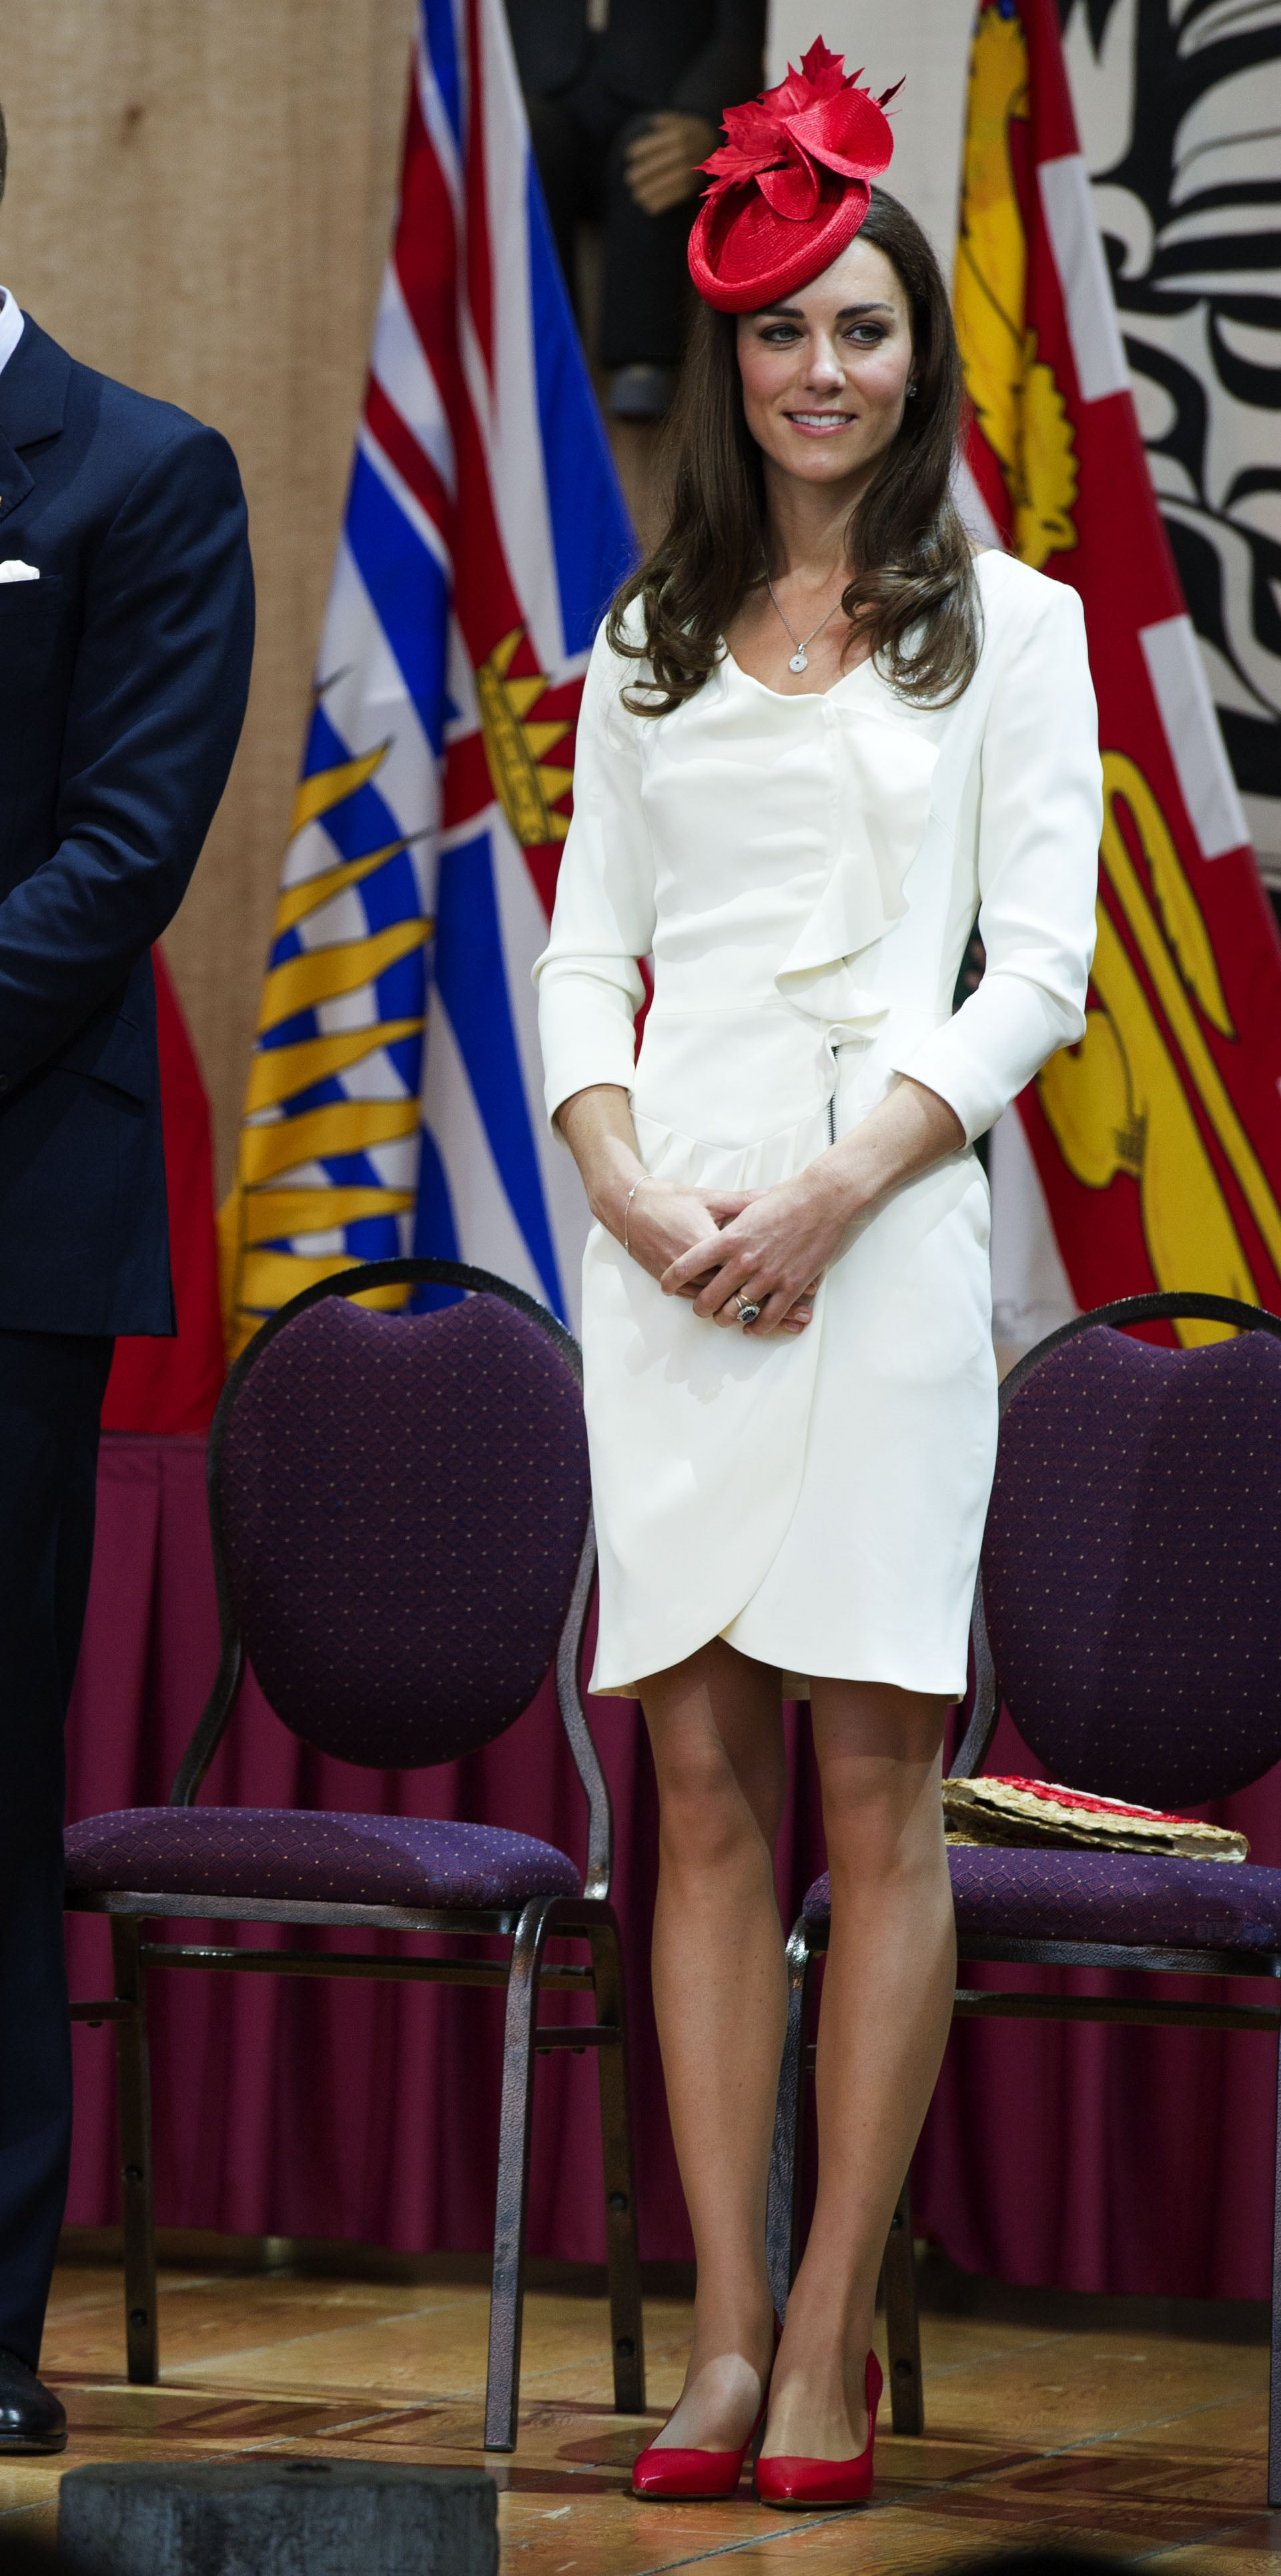 July 1st, 2011 At the Canadian Museum of Civilization in Gatineau, Canada.  Kate is wearing the same white Reiss dress she wore for her engagement photos. Her red-and-white ensemble is a nod to the Canadian flag.